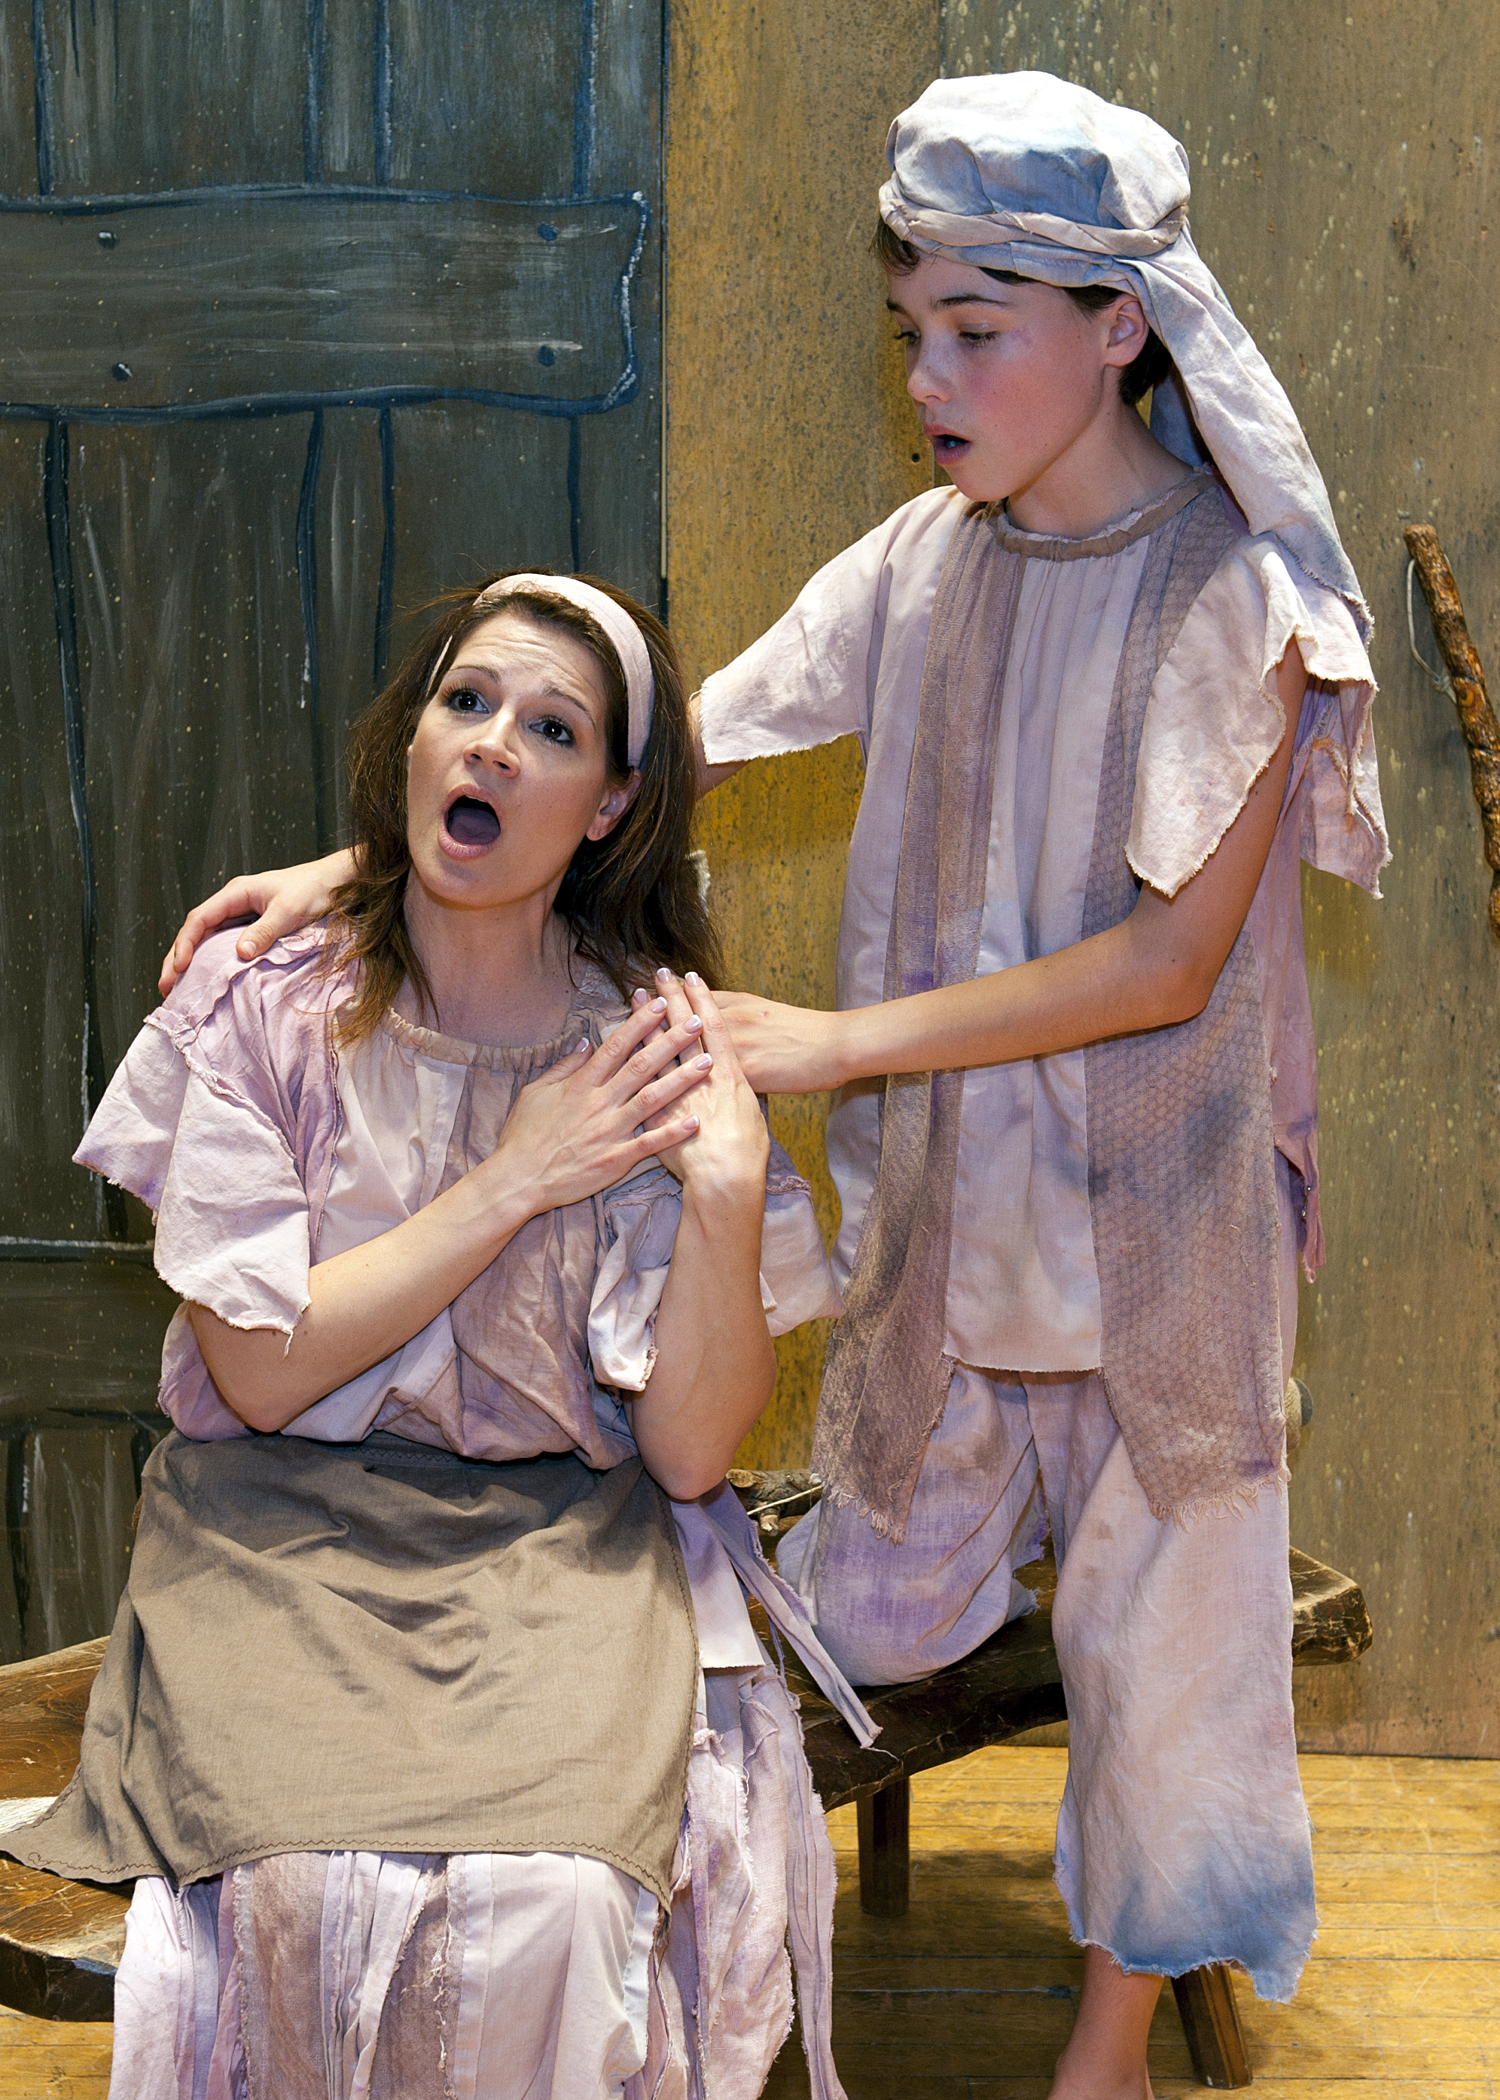 WestConn will host two performances of 'Amahl and the Night Visitors' this weekend.